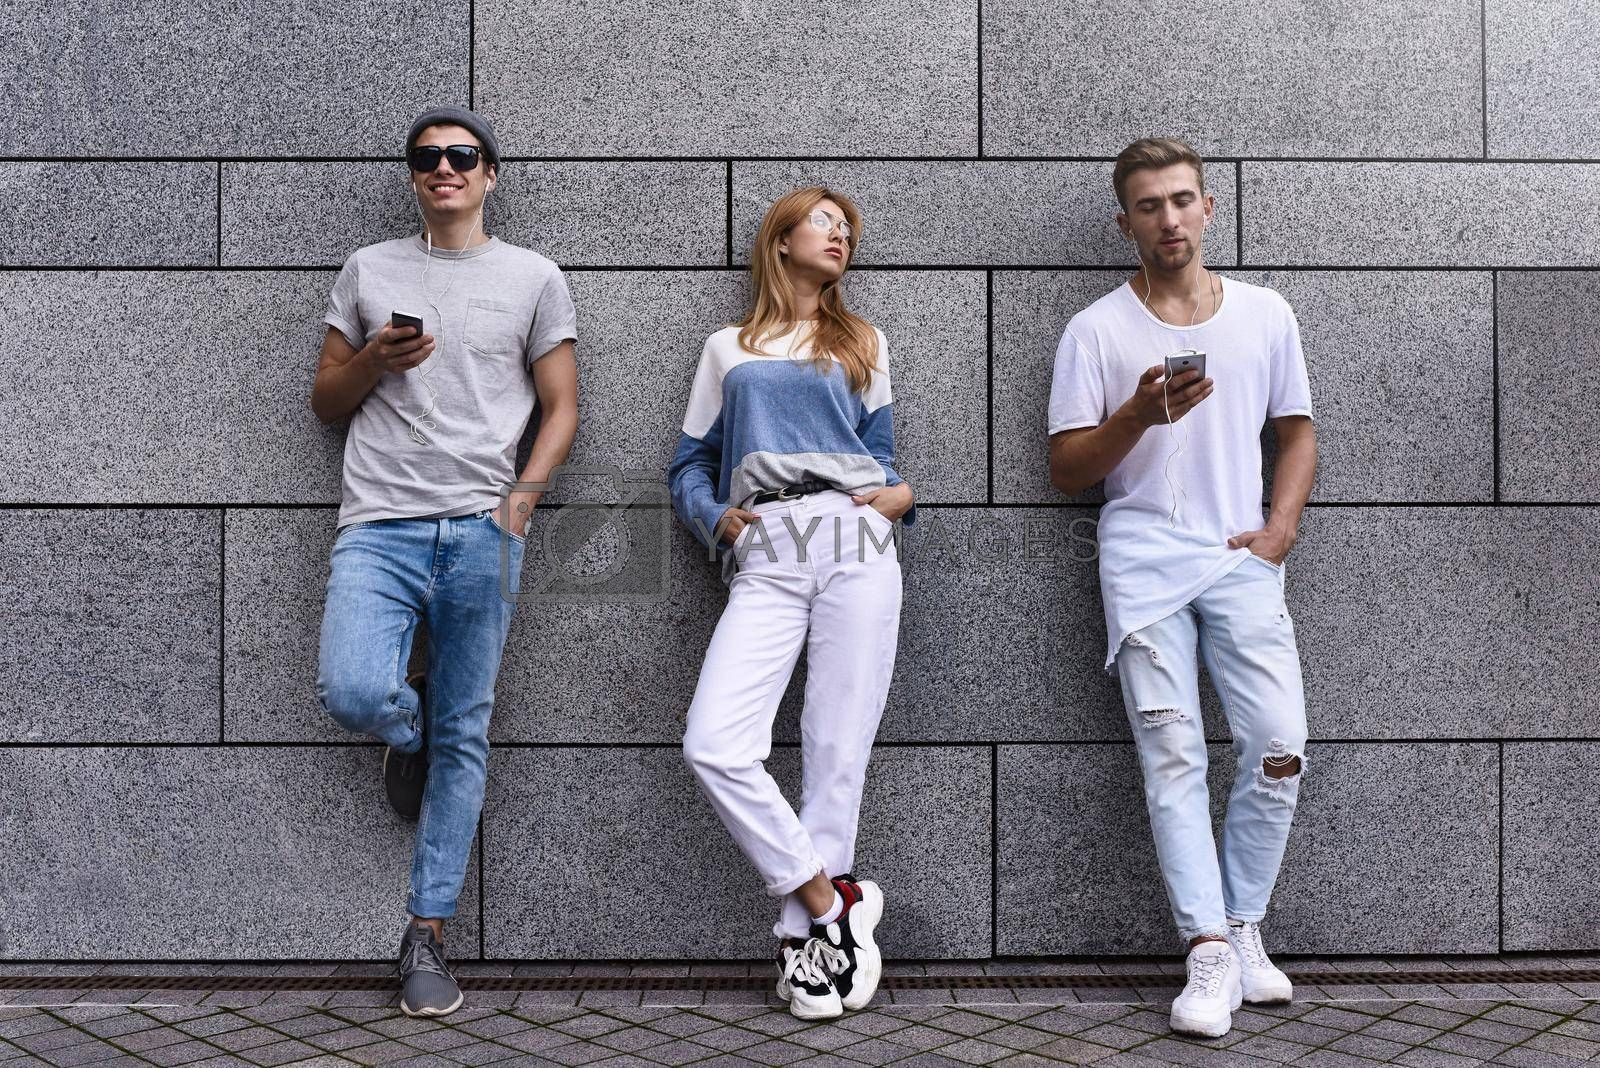 Royalty free image of Fashion portrait of Three best friends posing at street, wearing stylish outfit and jeans against gray wall . by Nickstock